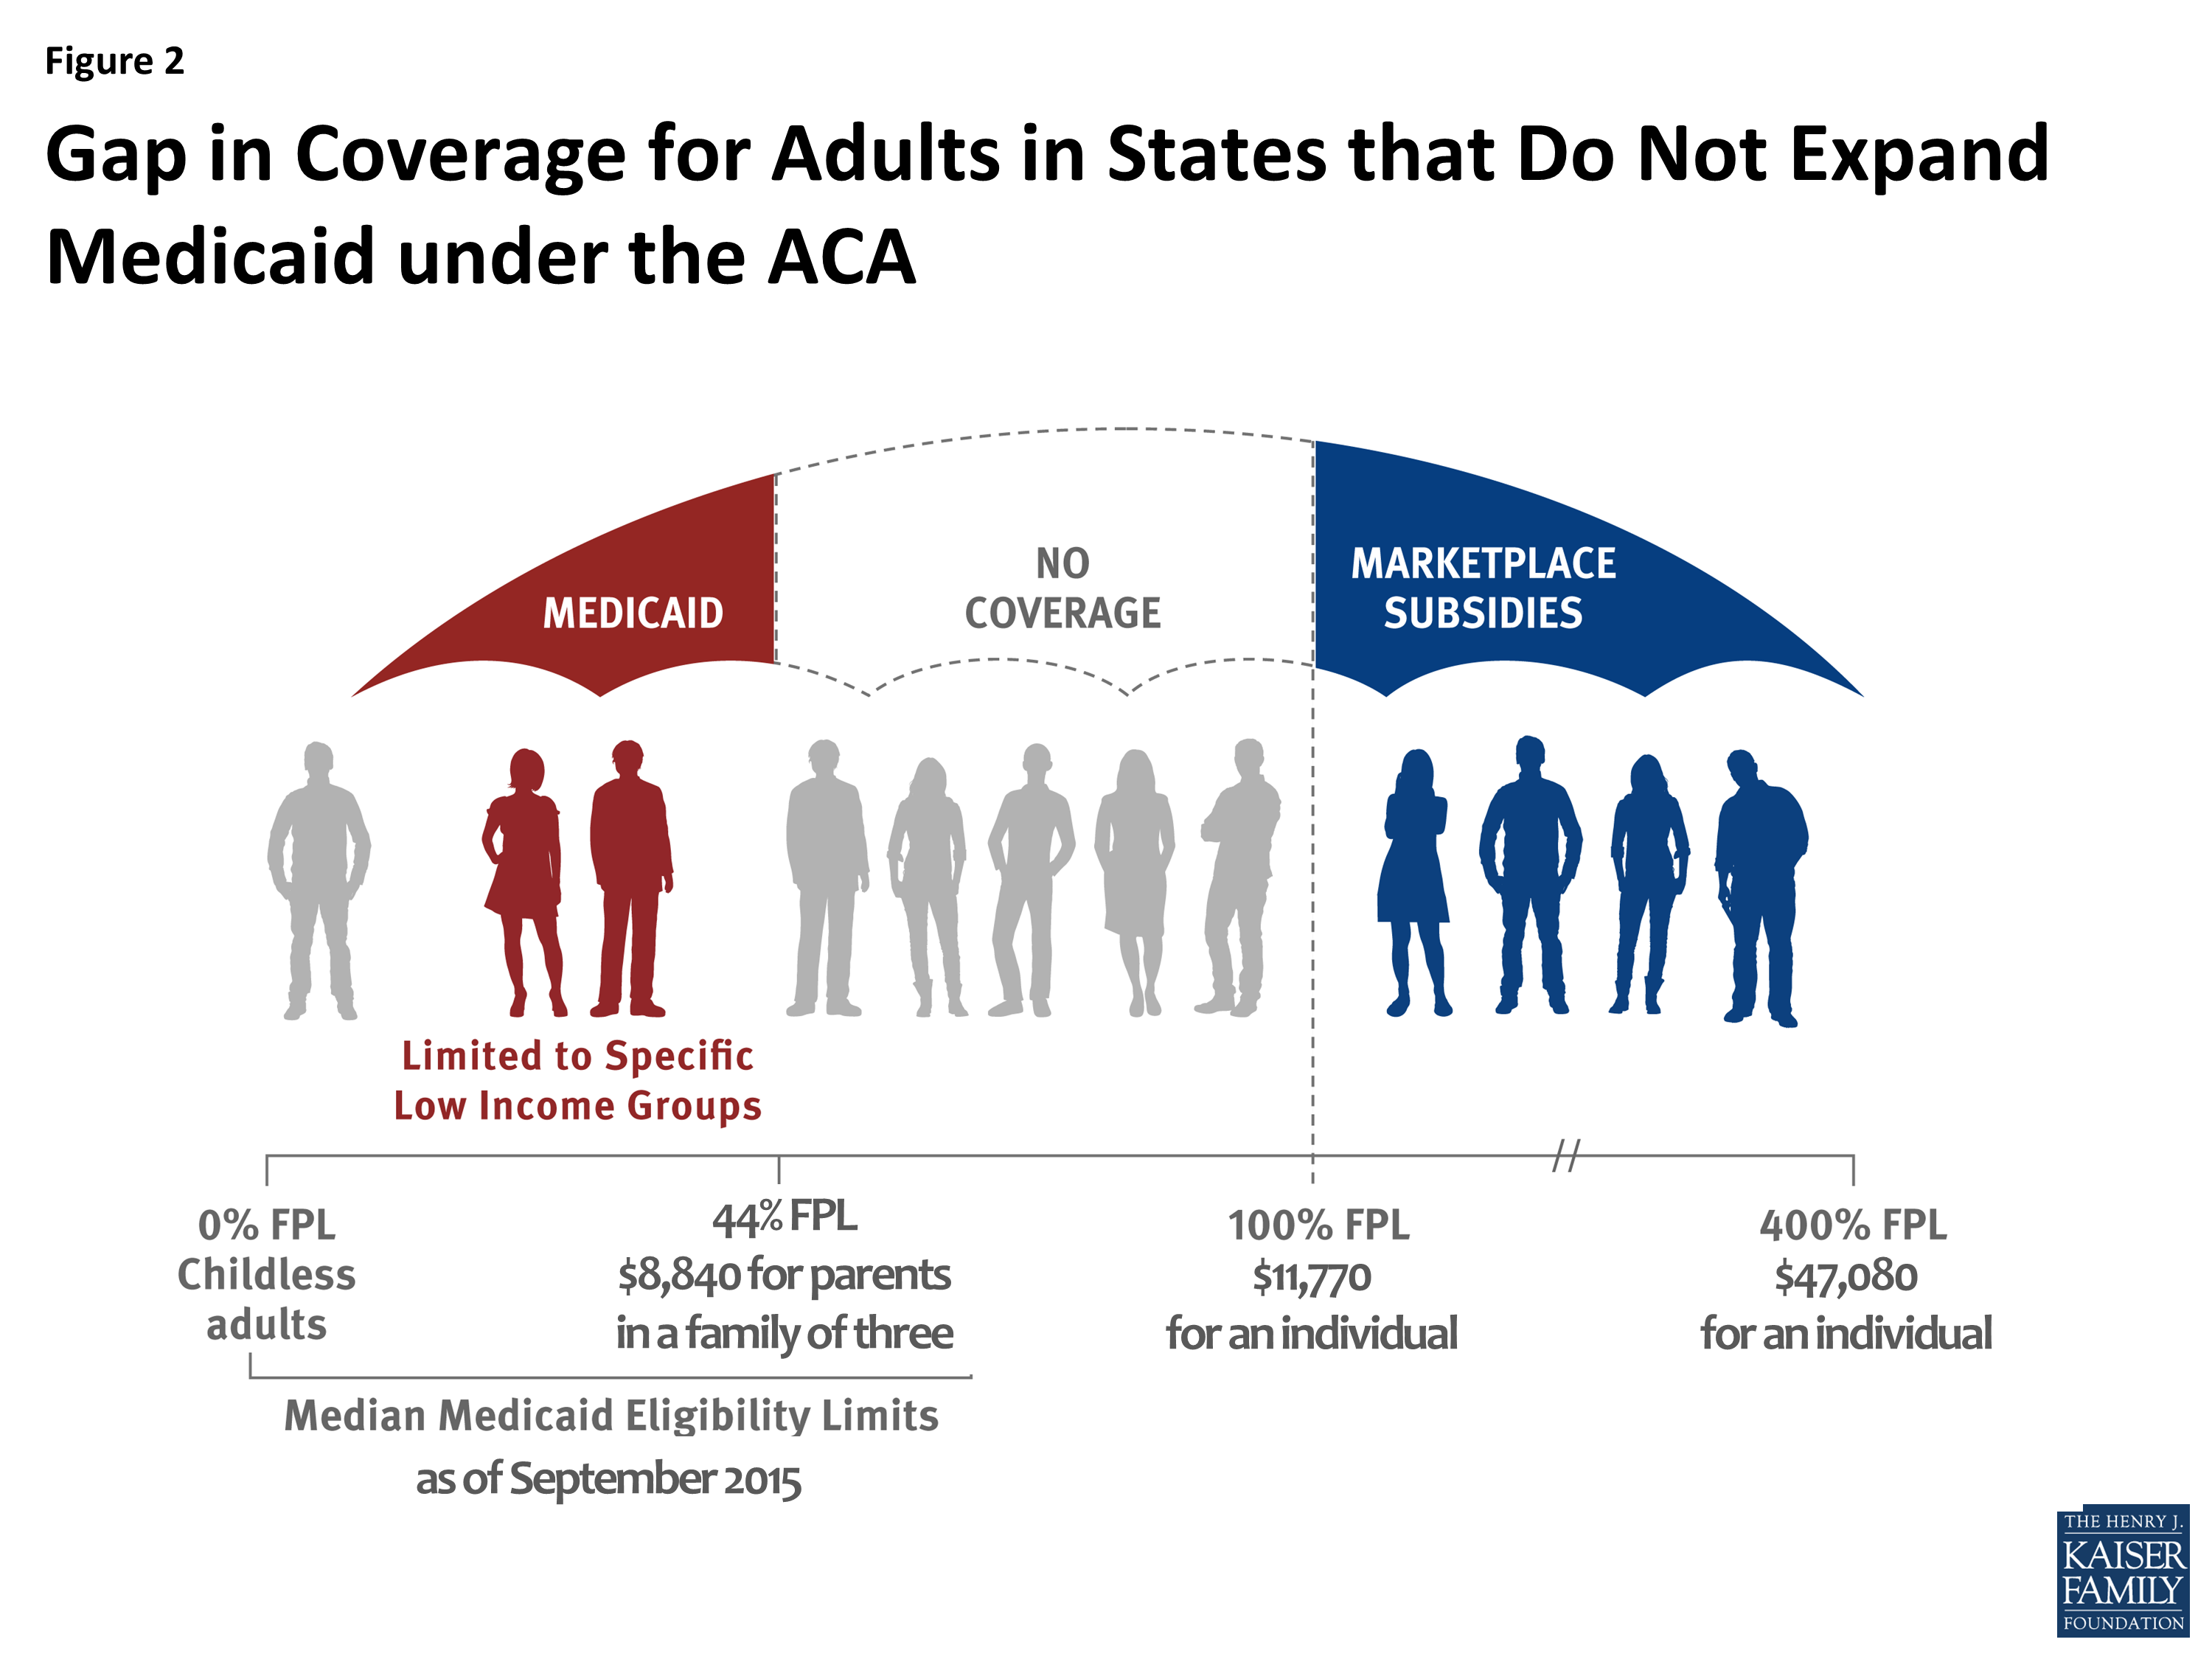 The Impact of the Coverage Gap for Adults in States not